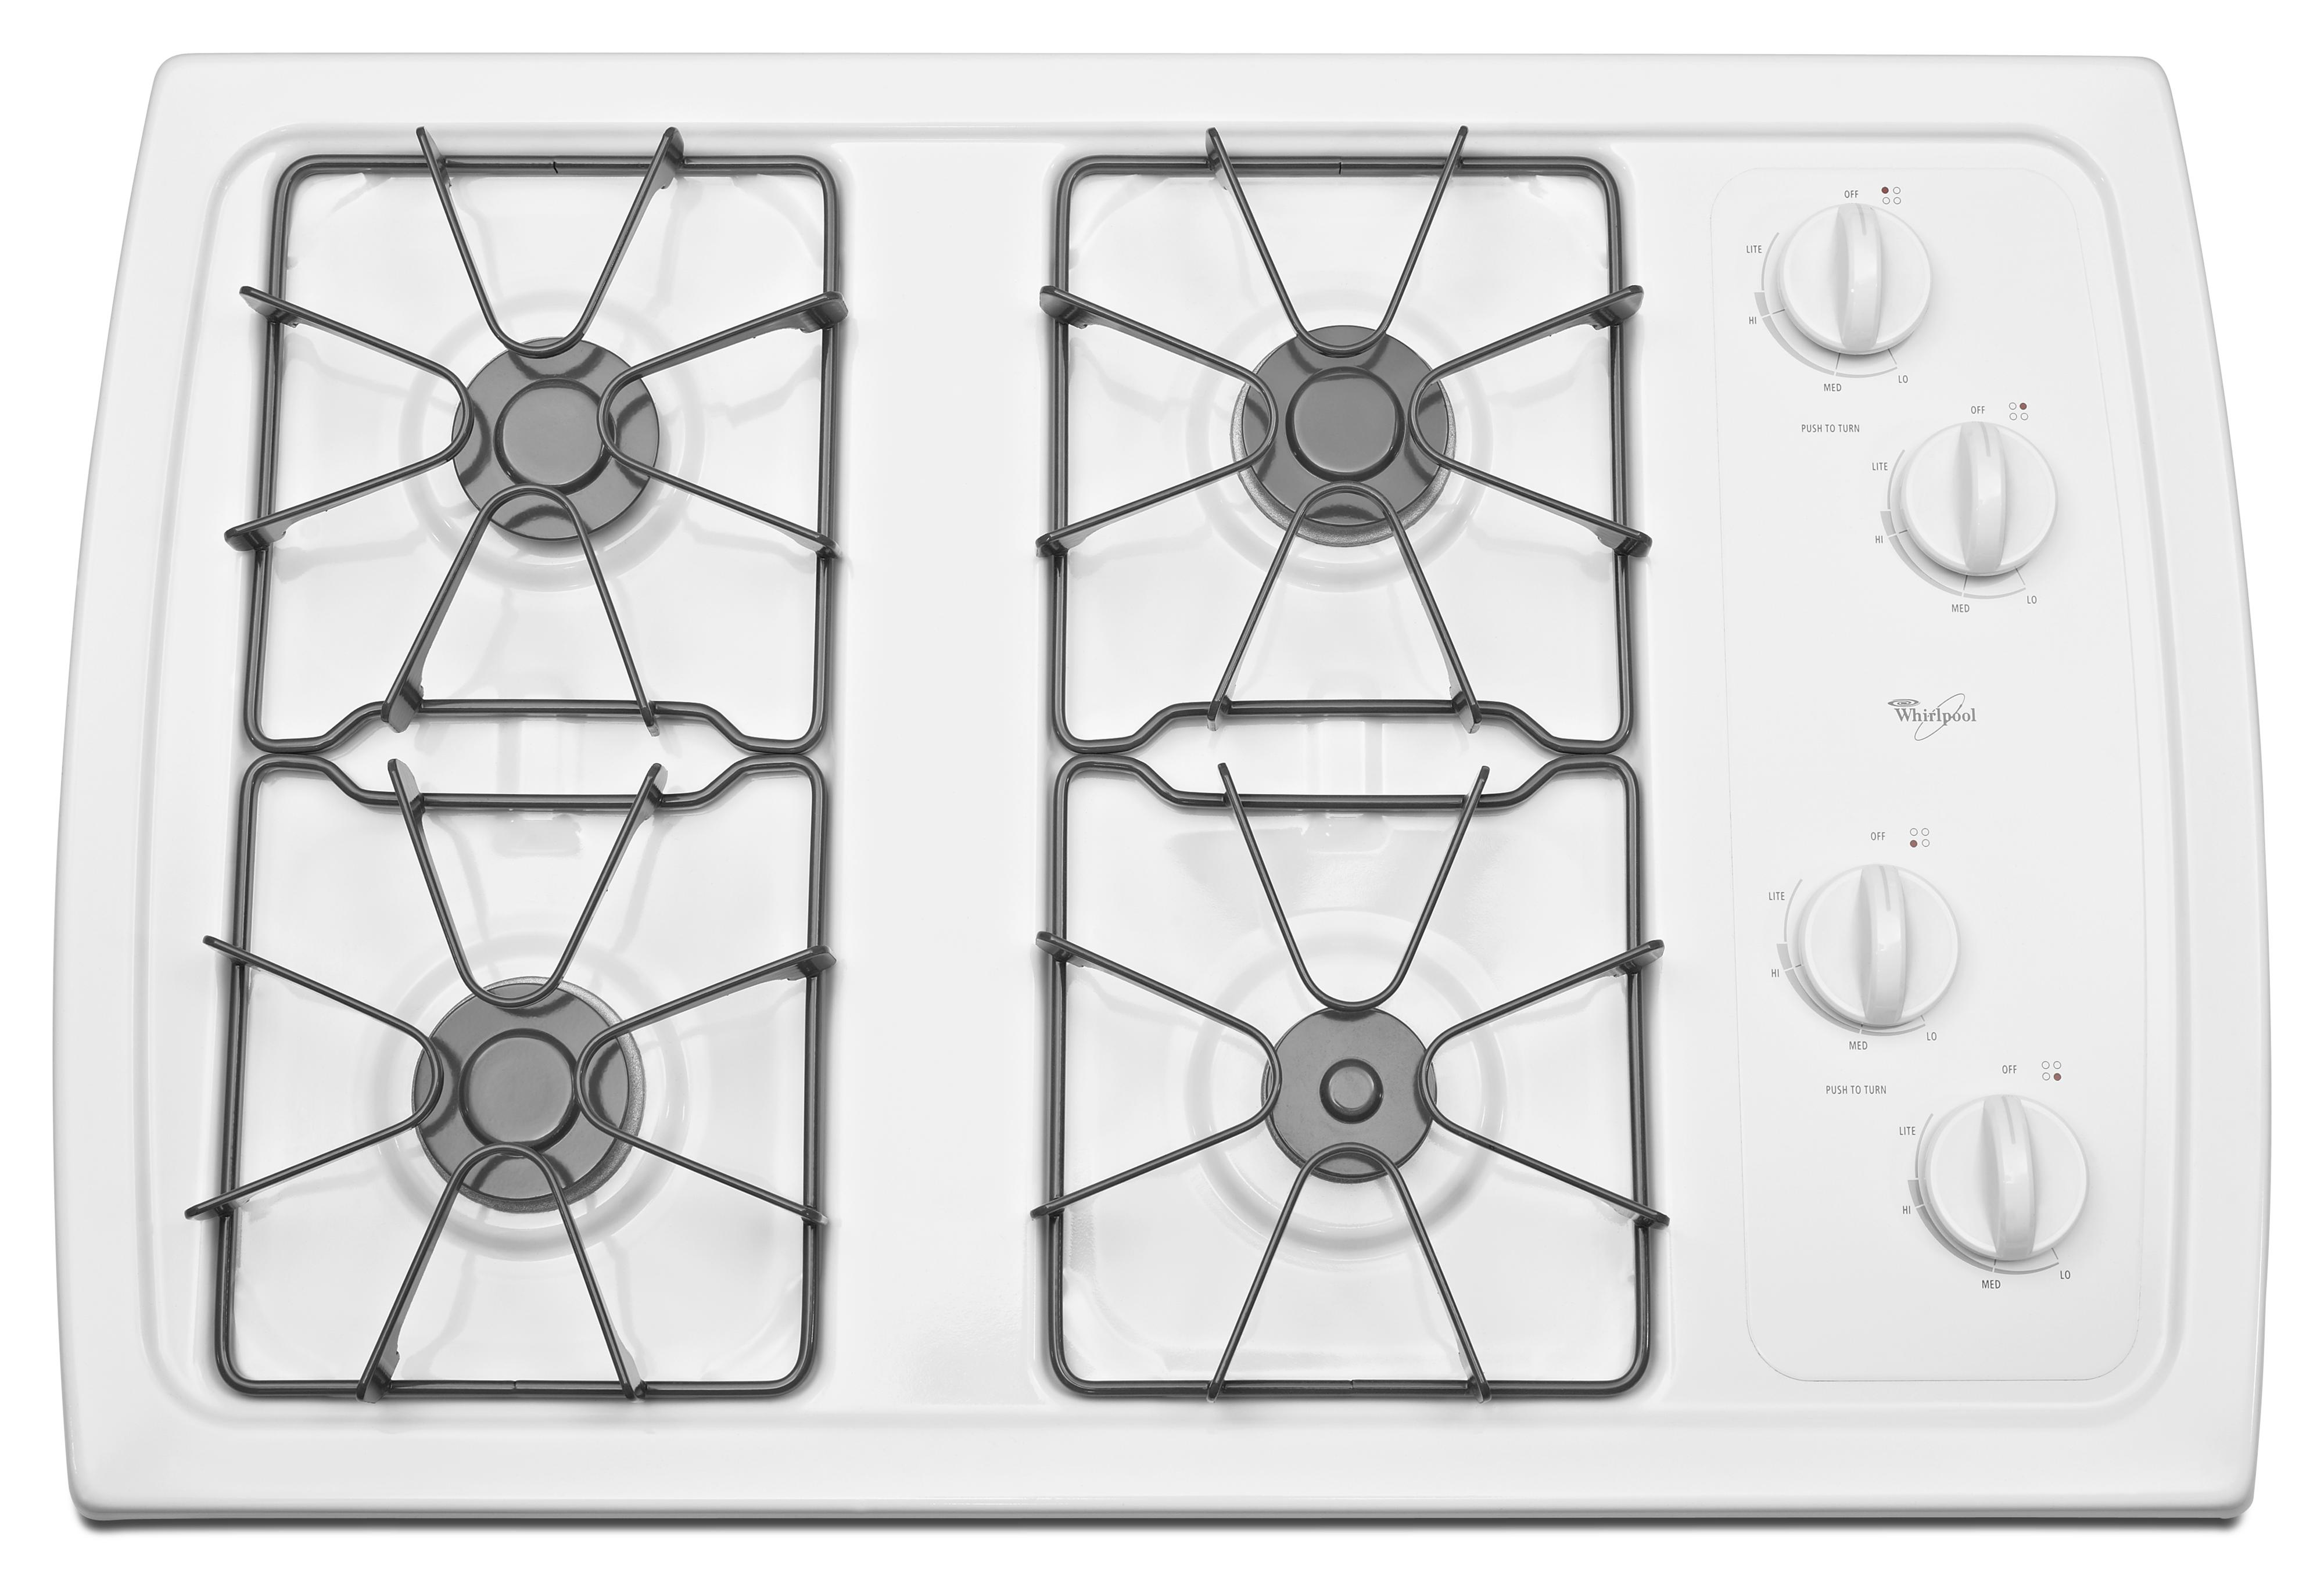 Whirlpool W3cg Xw30 Built In Gas Cooktop With